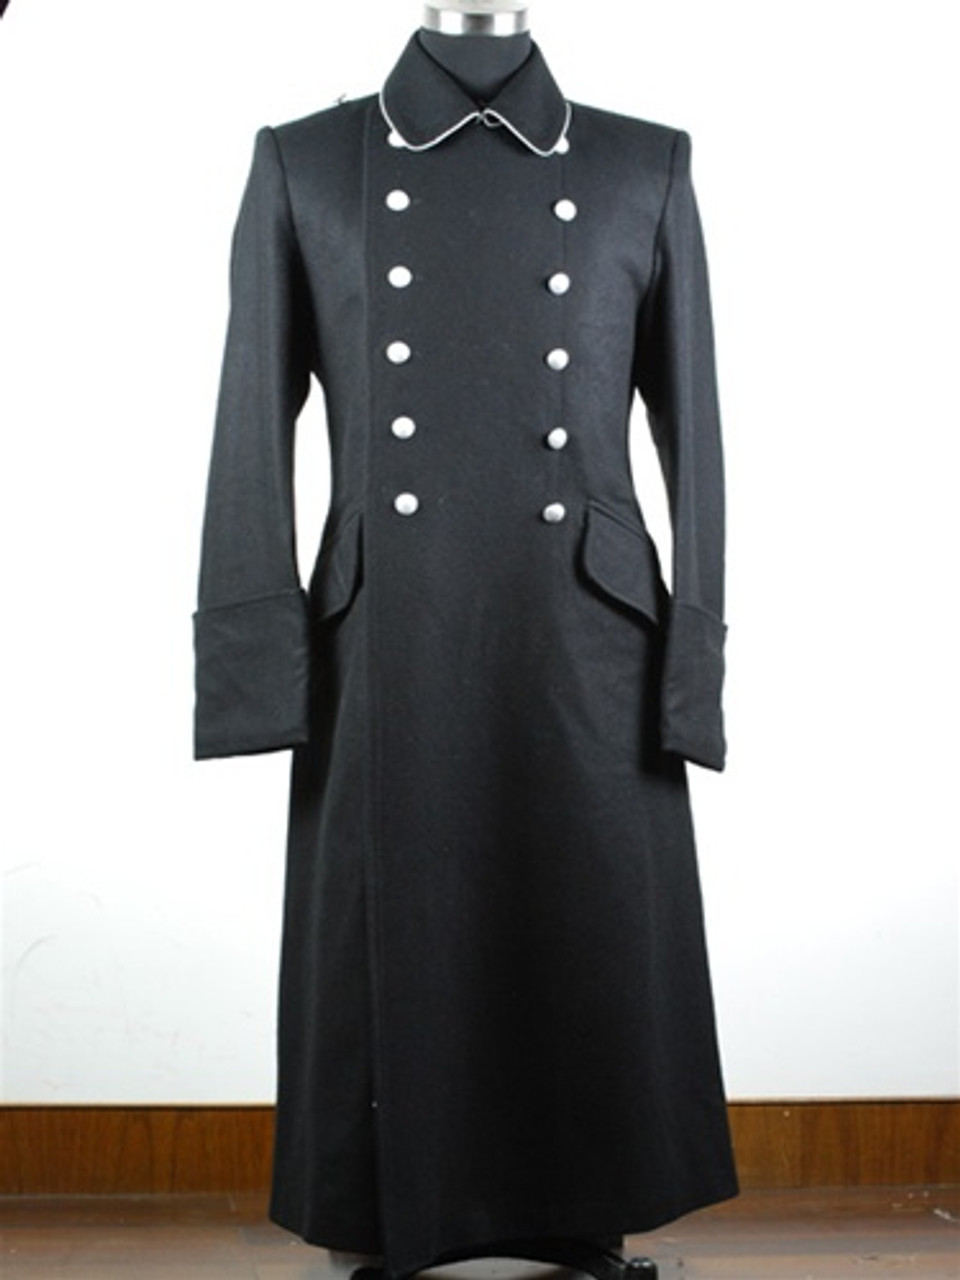 SS M32 Officer Gabardine Greatcoat from Hessen Antique